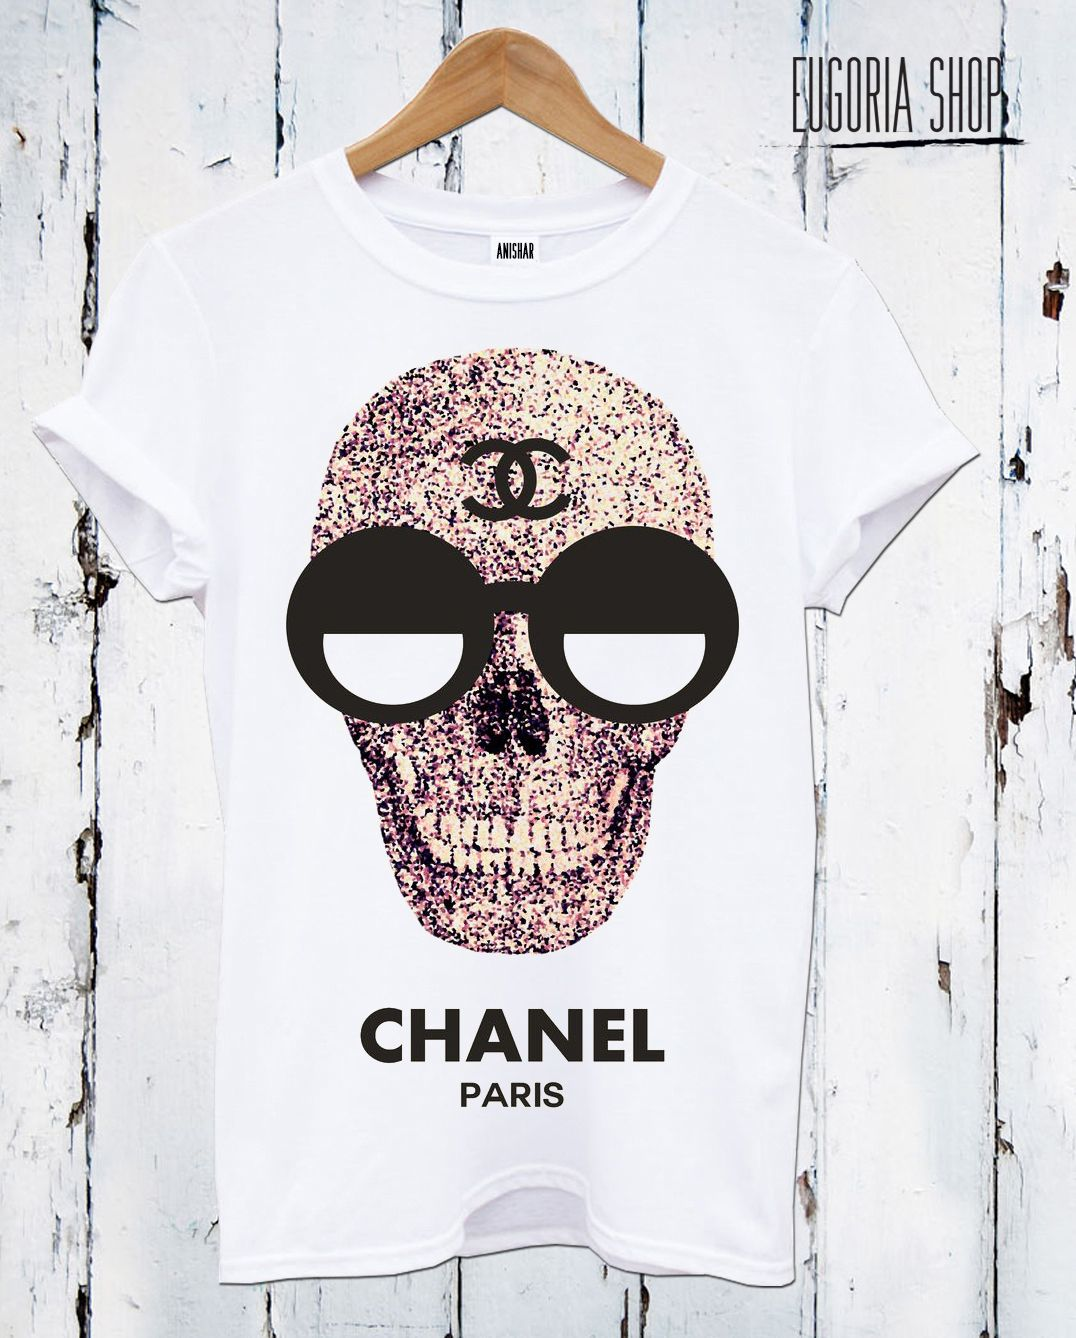 T-shirt design handmade - Eugoriashop Has Amazing Fashionable T Shirts Casual Pop Art Fashion Tee For Every One Handmade Design Tops For Everyone Who Want To Be Different